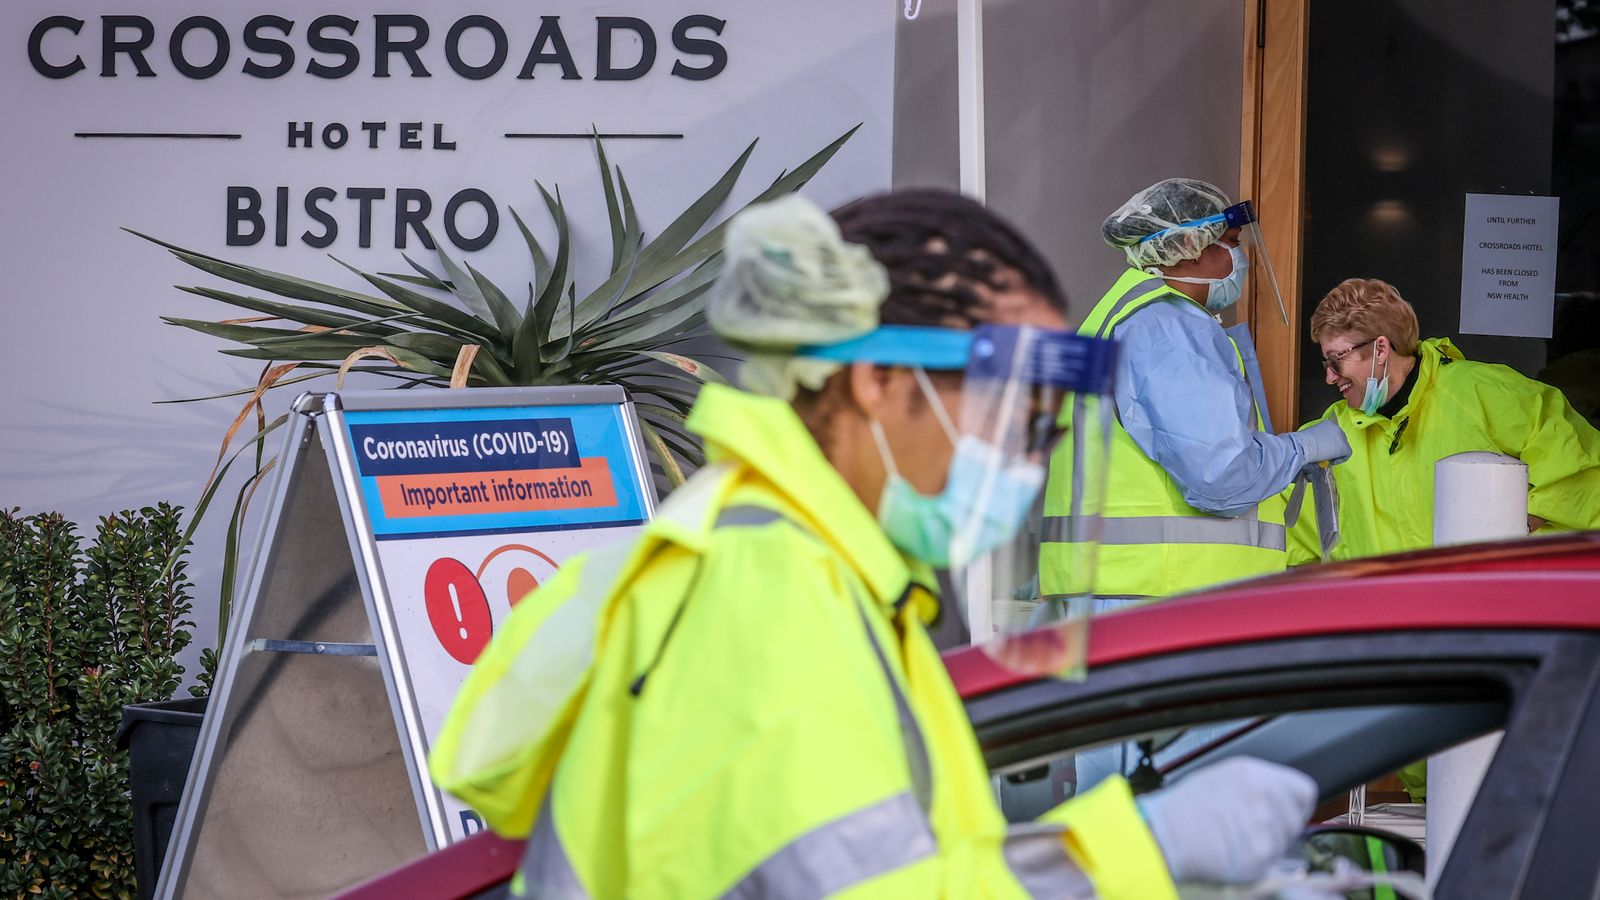 Coronavirus: Second wave fear in Australia after 21 new COVID-19 cases linked to hotel used by truckers